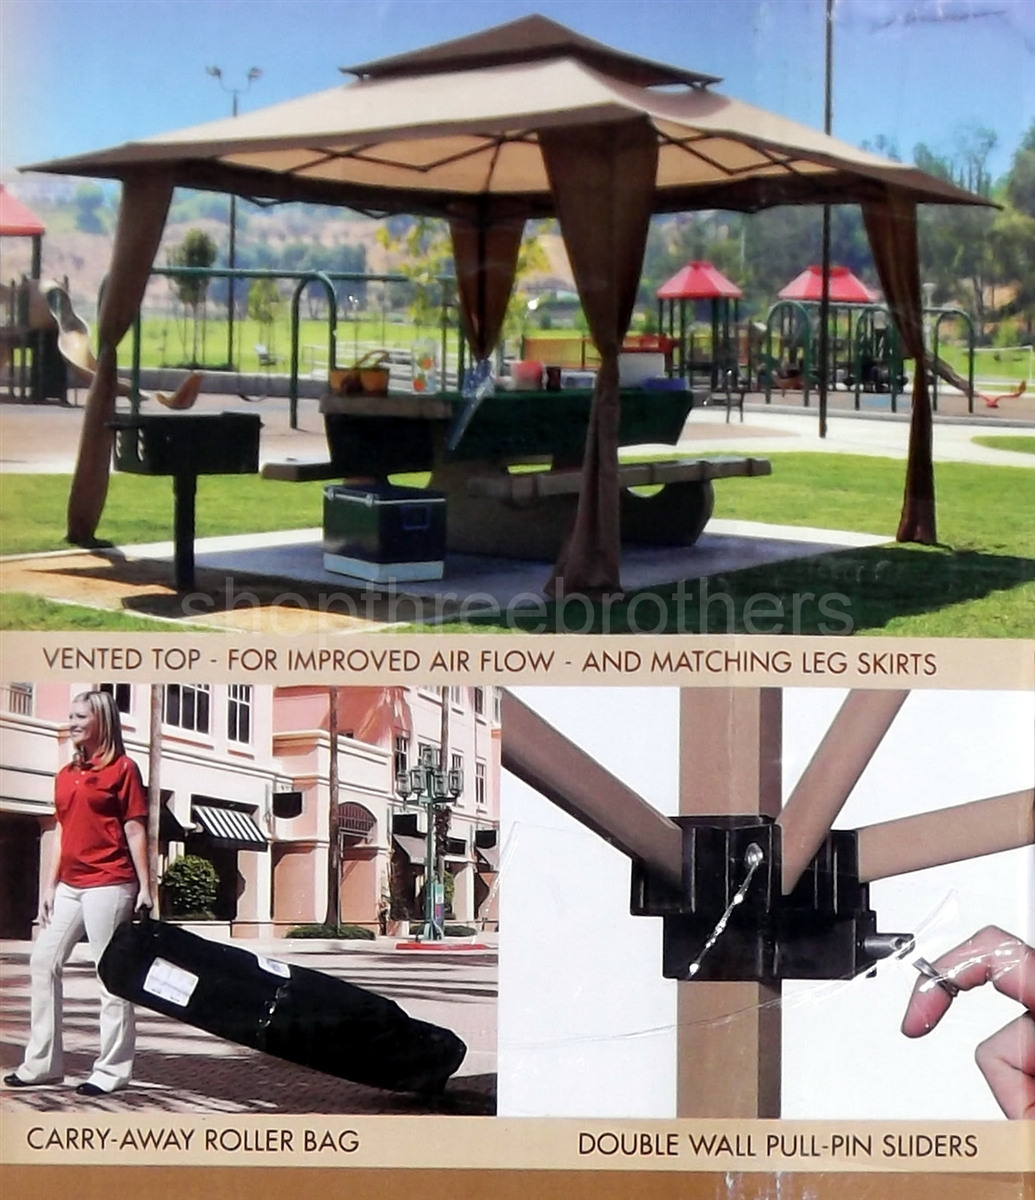 Free ... & Huge EZ UP Canopy Pagoda Shade Shelter 13u0027 x 13u0027 Pop Up Tent